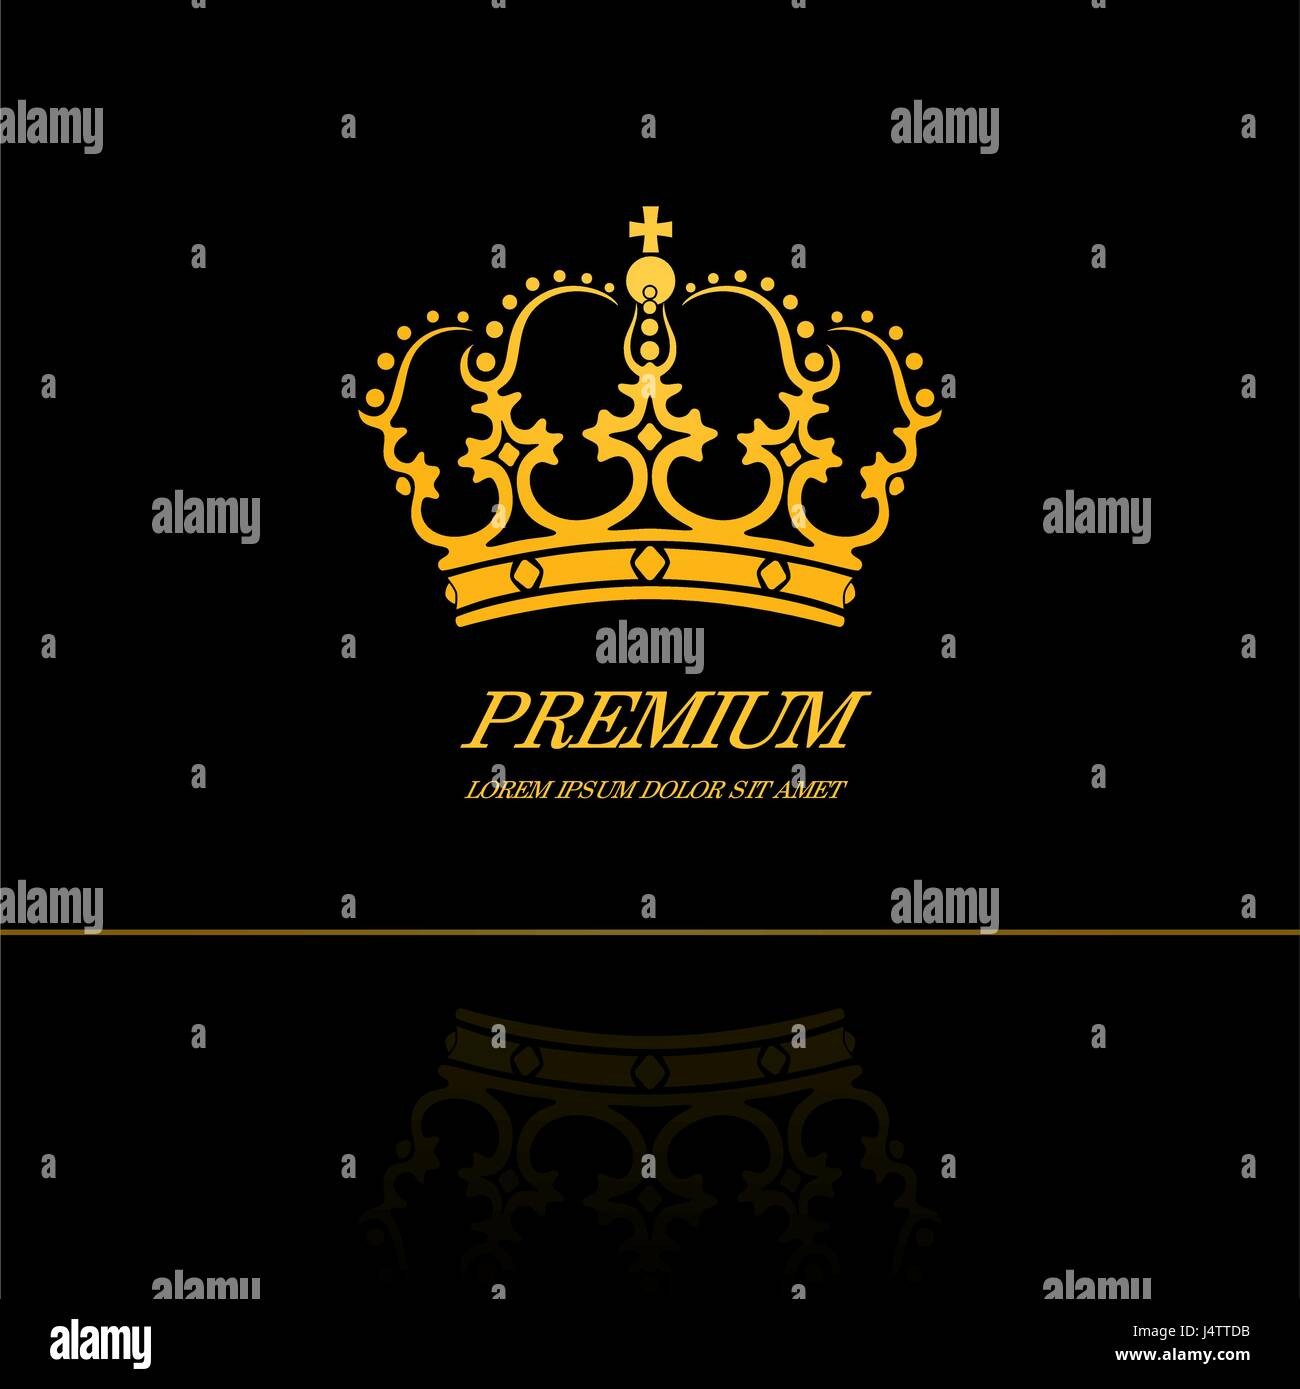 Crown Prince Hotel Stockfotos & Crown Prince Hotel Bilder - Alamy